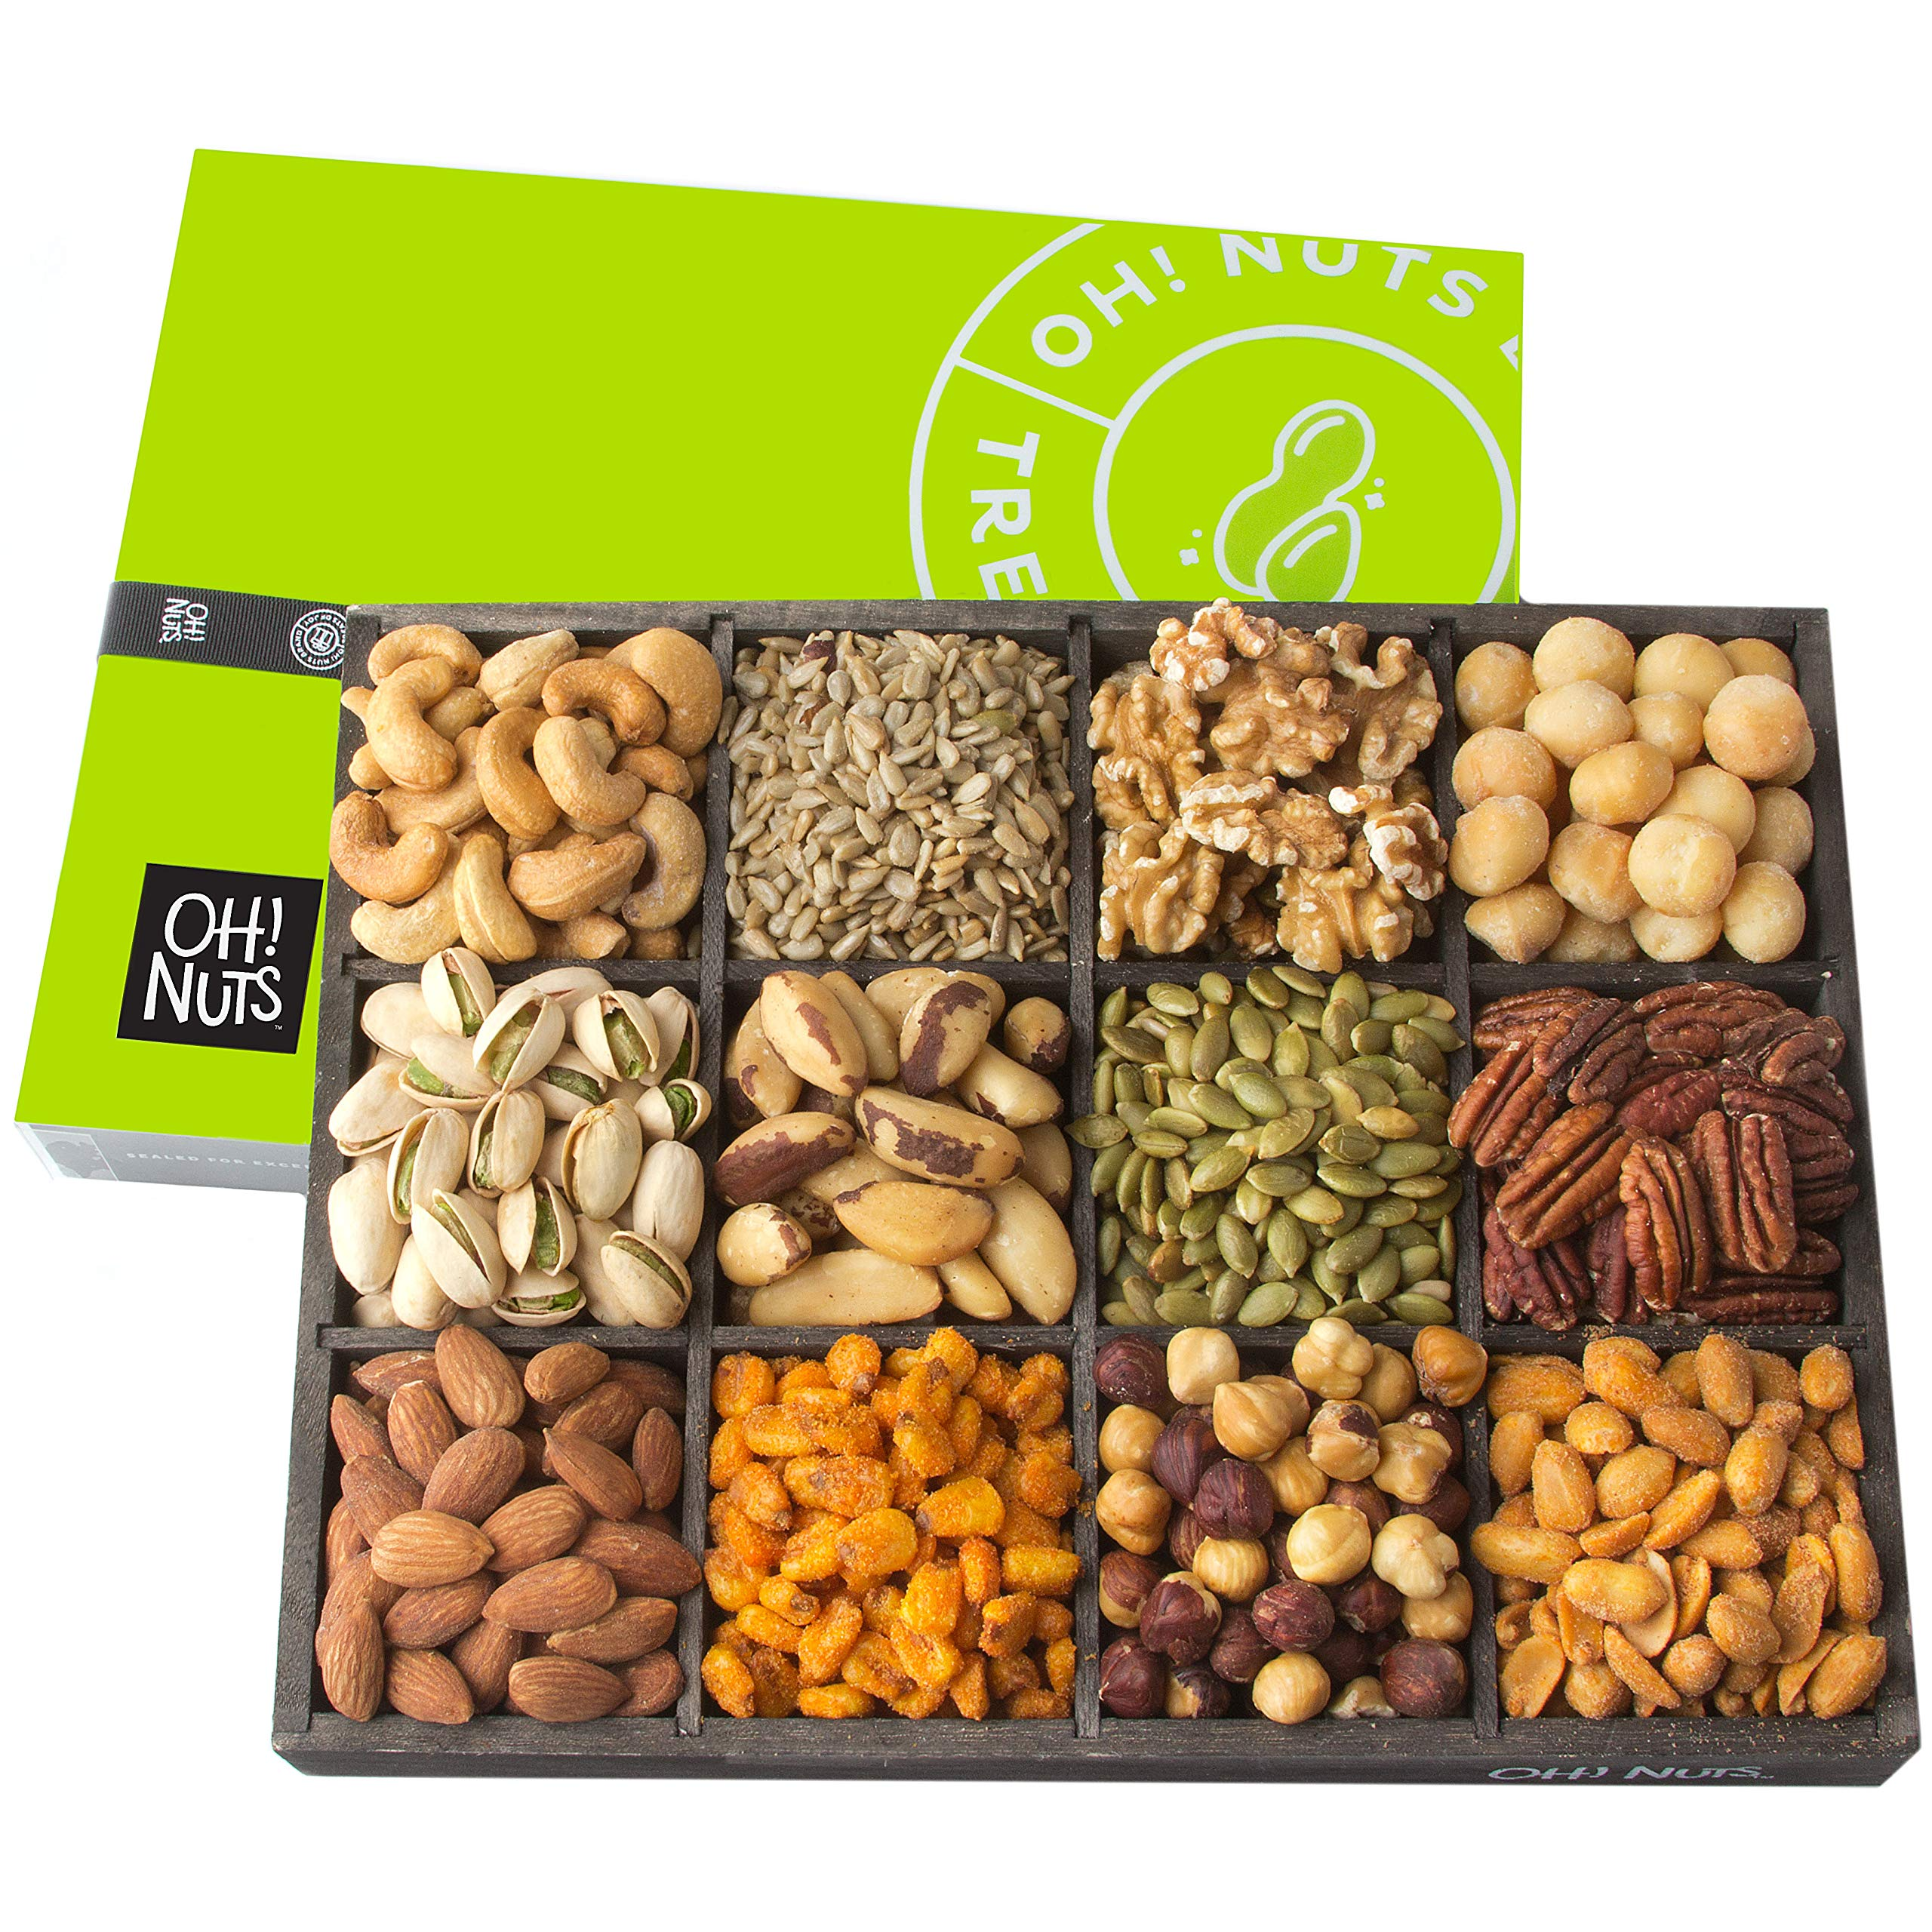 Amazon.com : Oh! Nuts® Mixed Nuts Holiday Gift Box Premium Snack ...